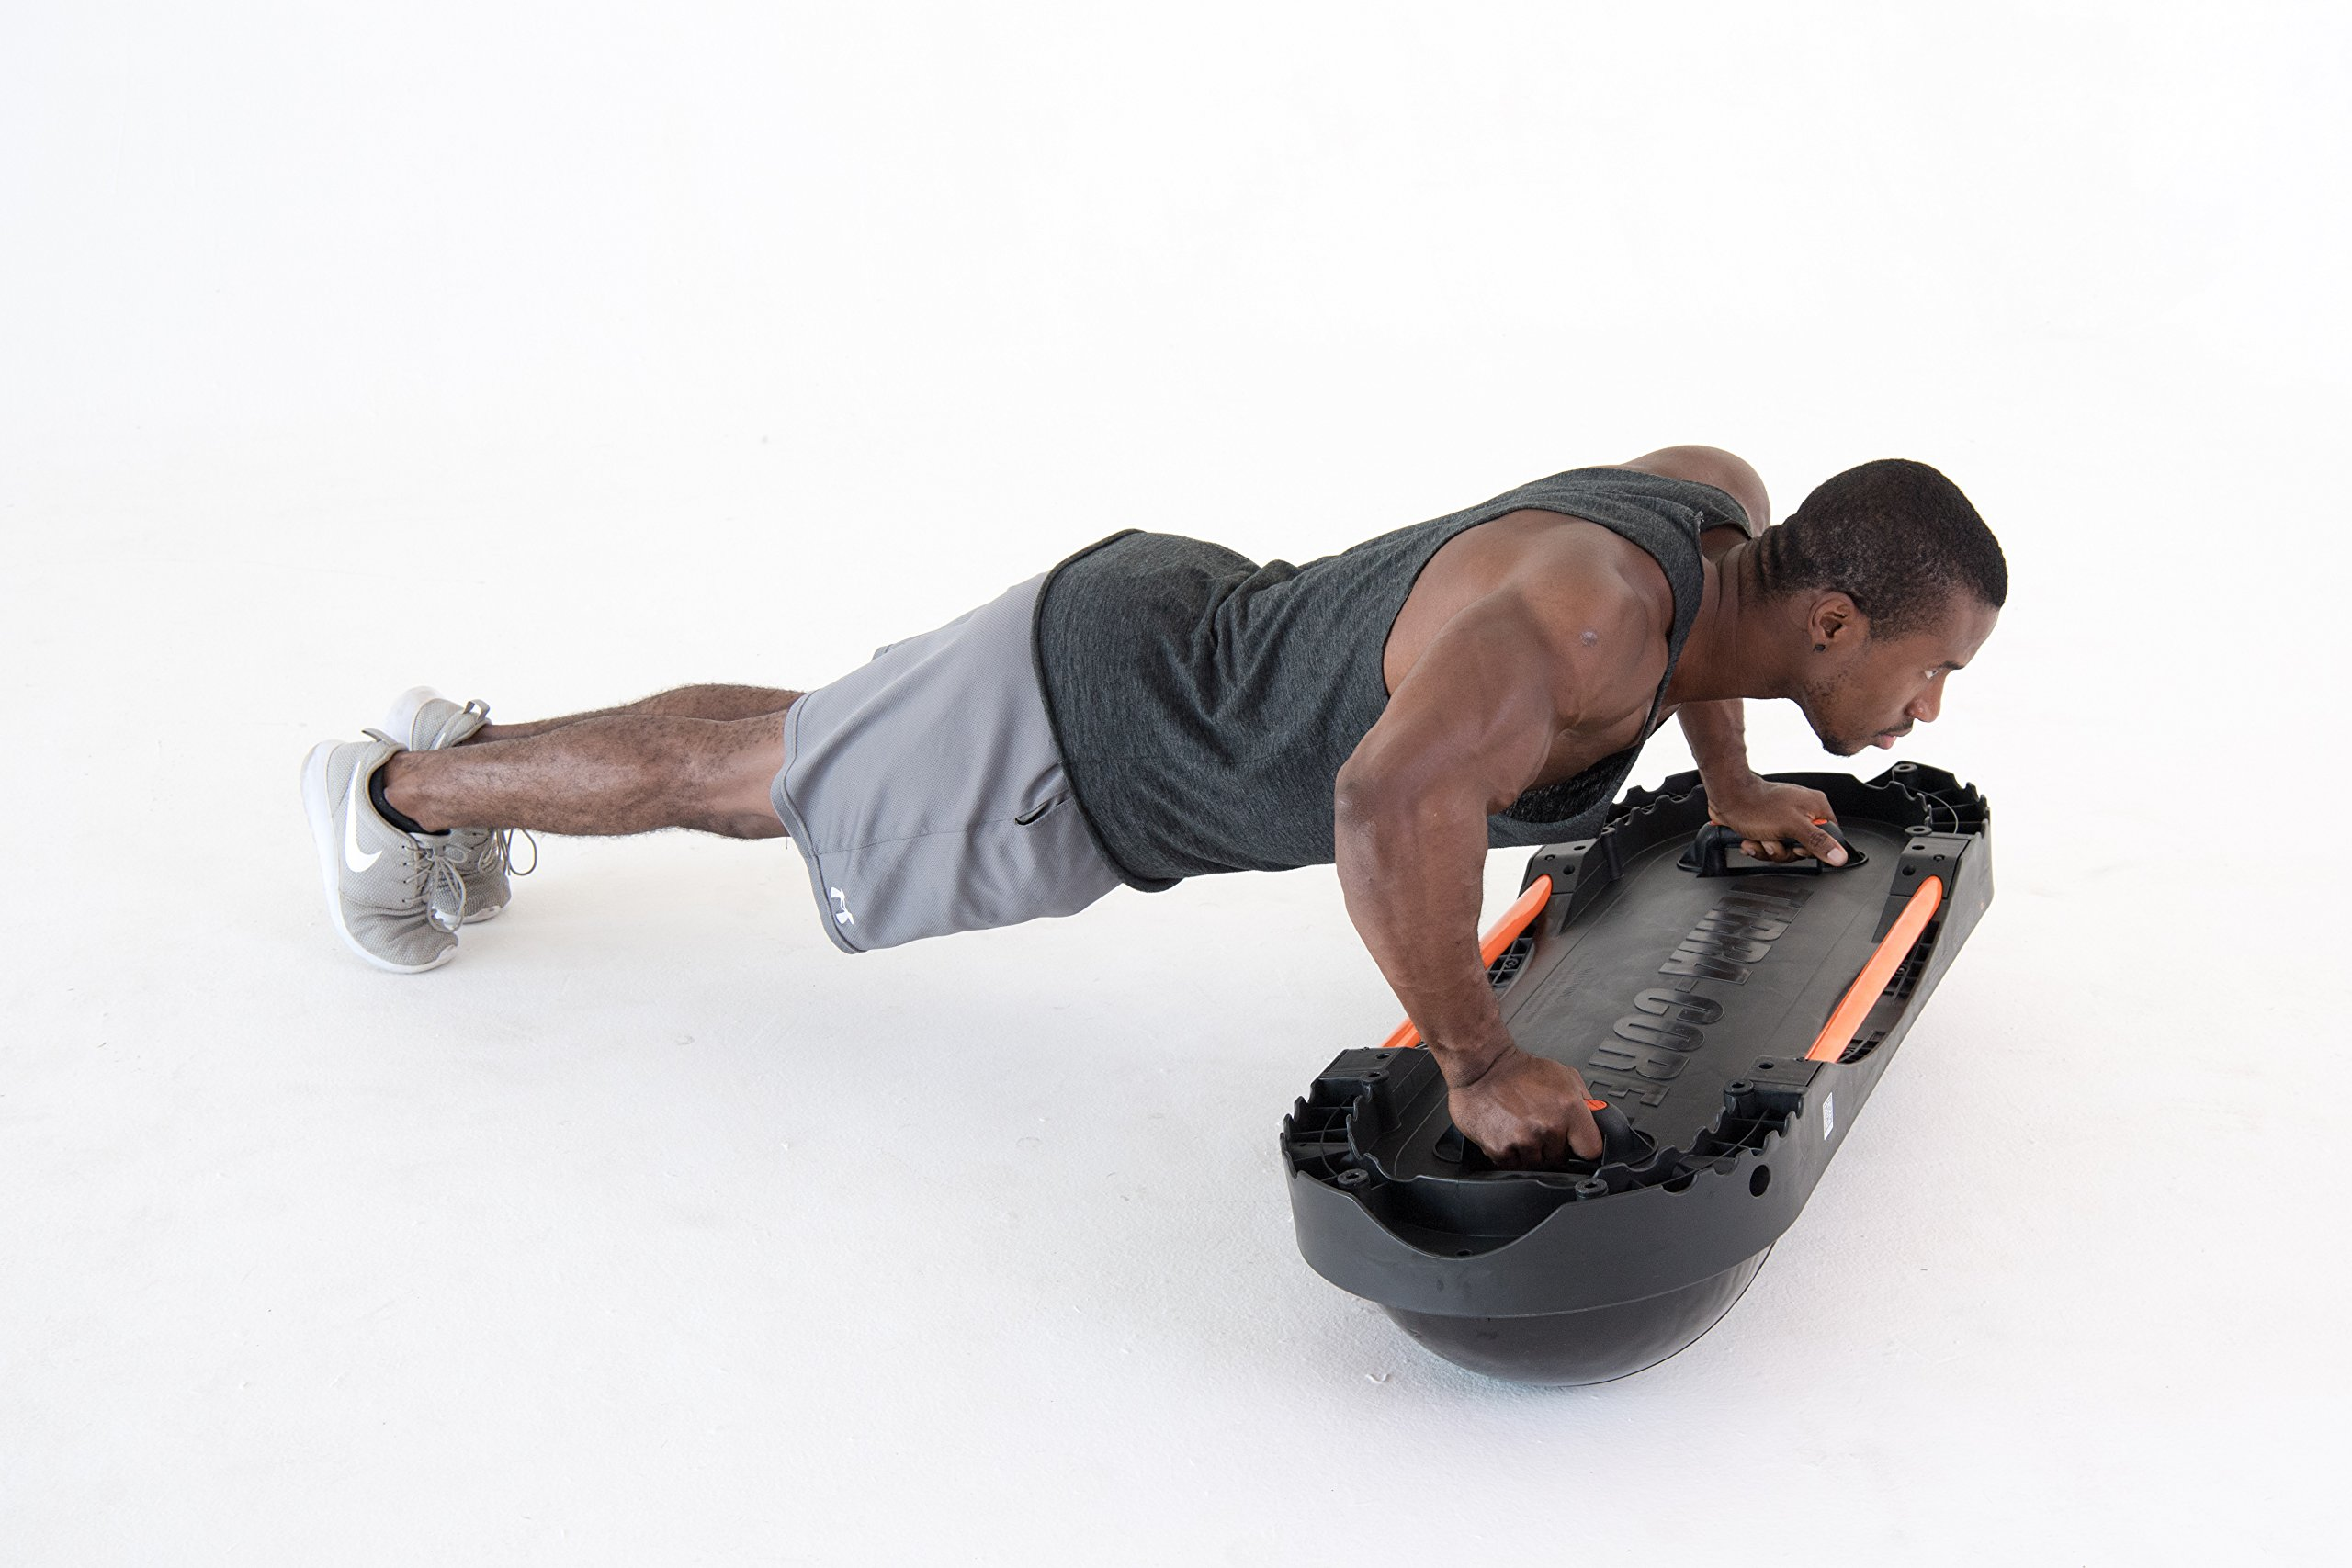 Terra Core Balance Trainer, Stability, Agility, Strength, Functional Fitness, Core Exercises, Abs Workout, Pushups, Weight Bench. by Vicore Fitness (Image #3)